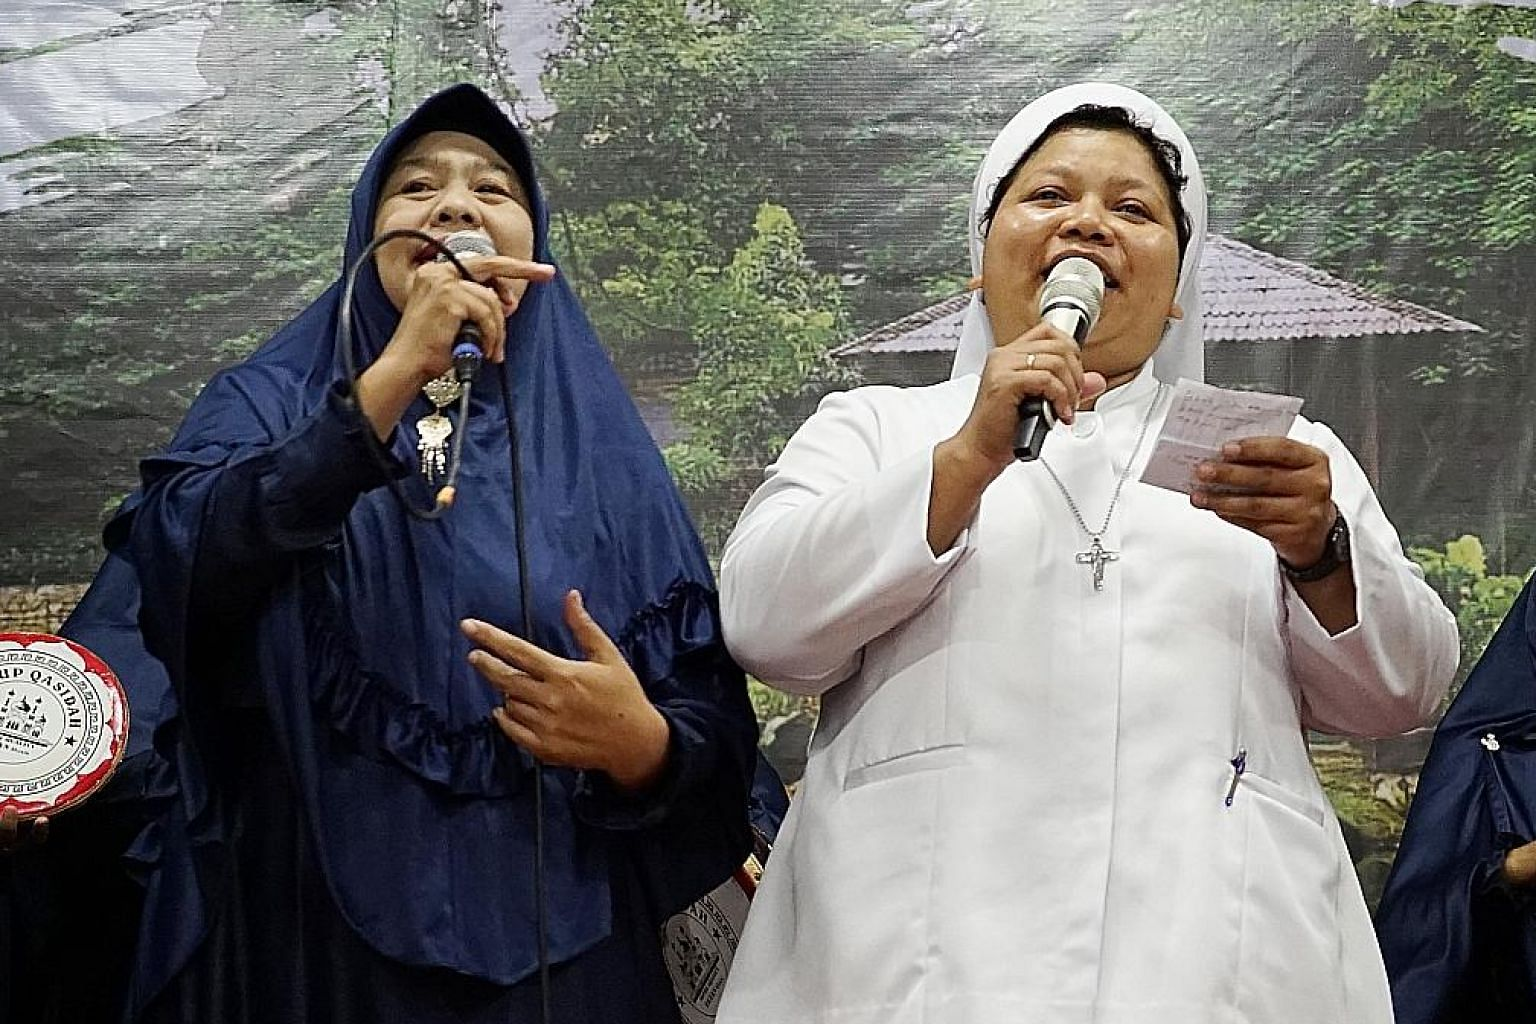 Two Christian nuns performing with a qasidah (Islamic pop music) group. Netizens praised their performance as a heartwarming example of interfaith acceptance amid rising intolerance.